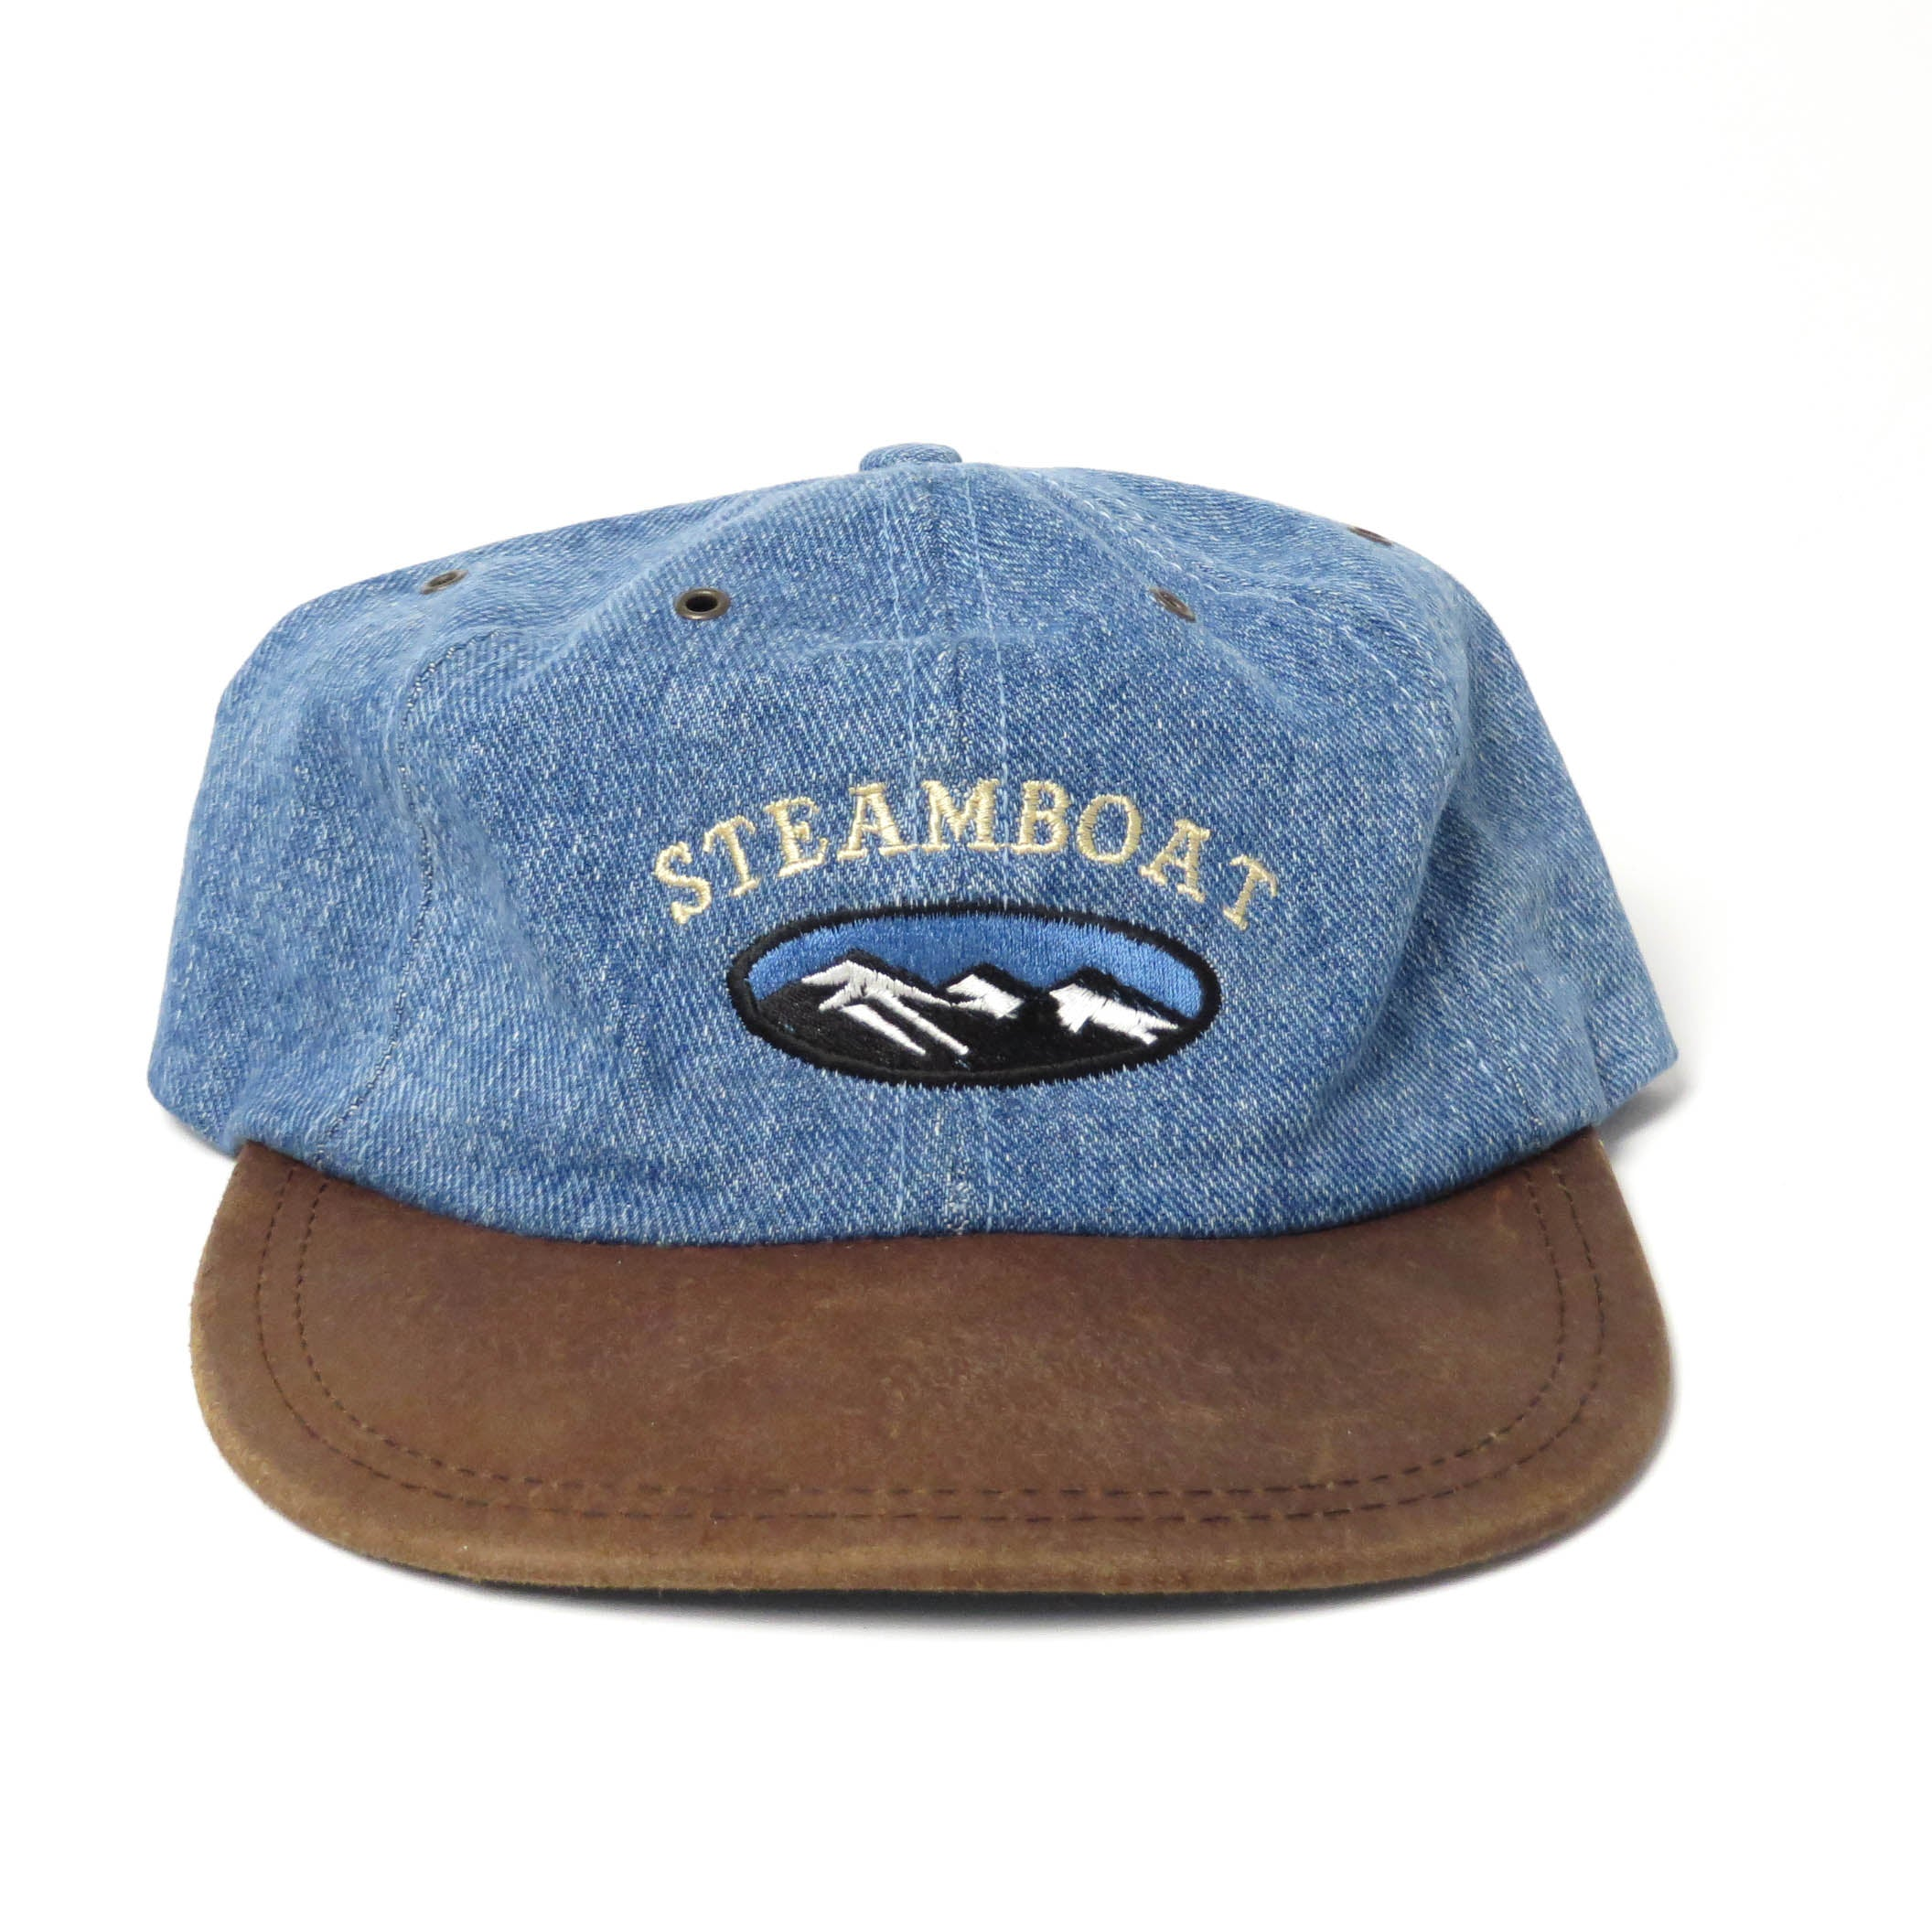 Vintage Steamboat Springs Denim/Leather Strapback Hat